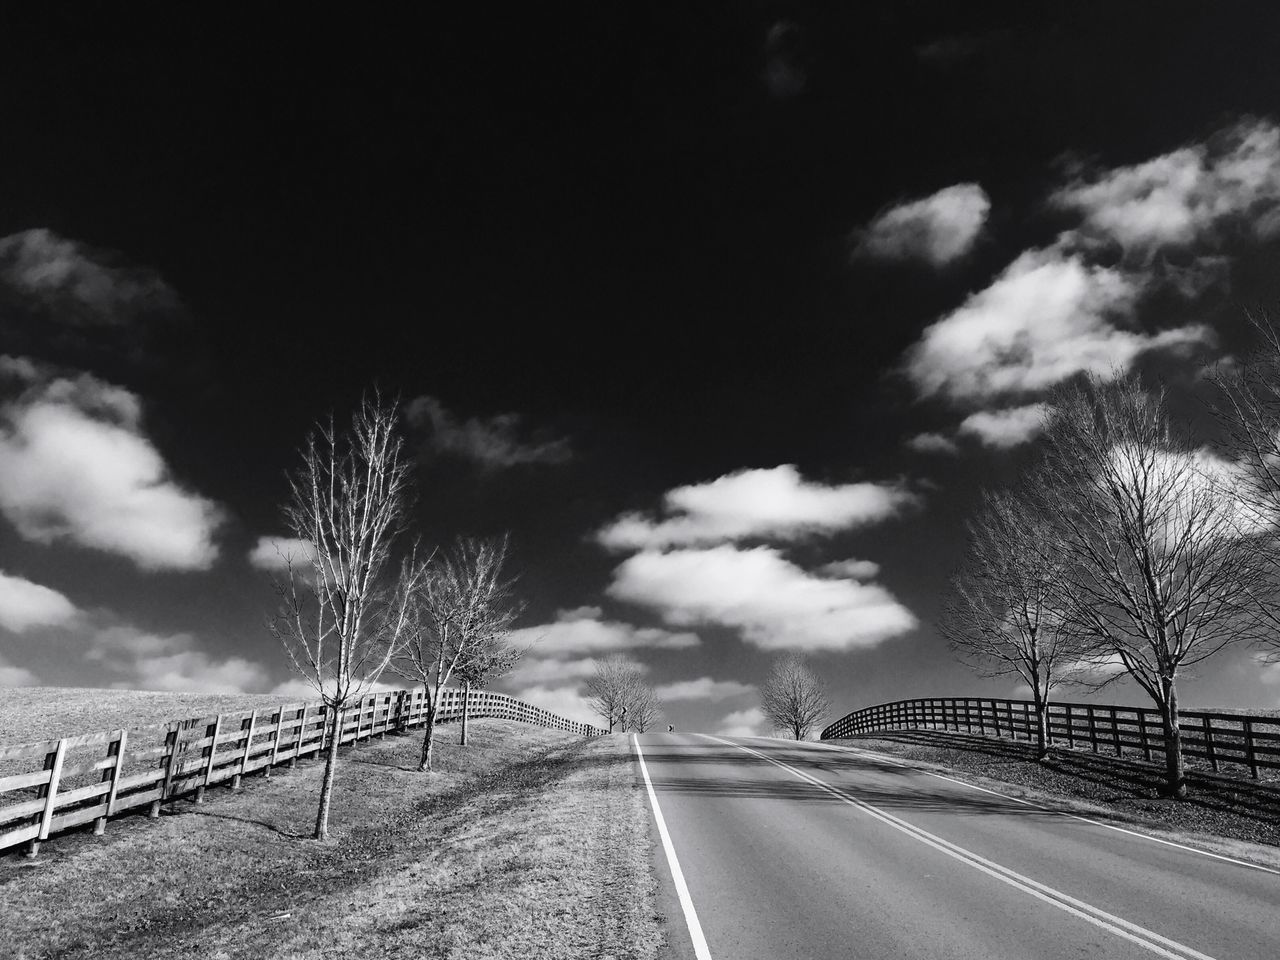 The Way Forward Road Transportation Fences Sky Cloud - Sky Outdoors Tree Day Railing No People Nature Country Road Countryside EyeEm Best Shots Rural Scene Rural America Landscape Winter Scenics Beauty In Nature Black And White Blackandwhite